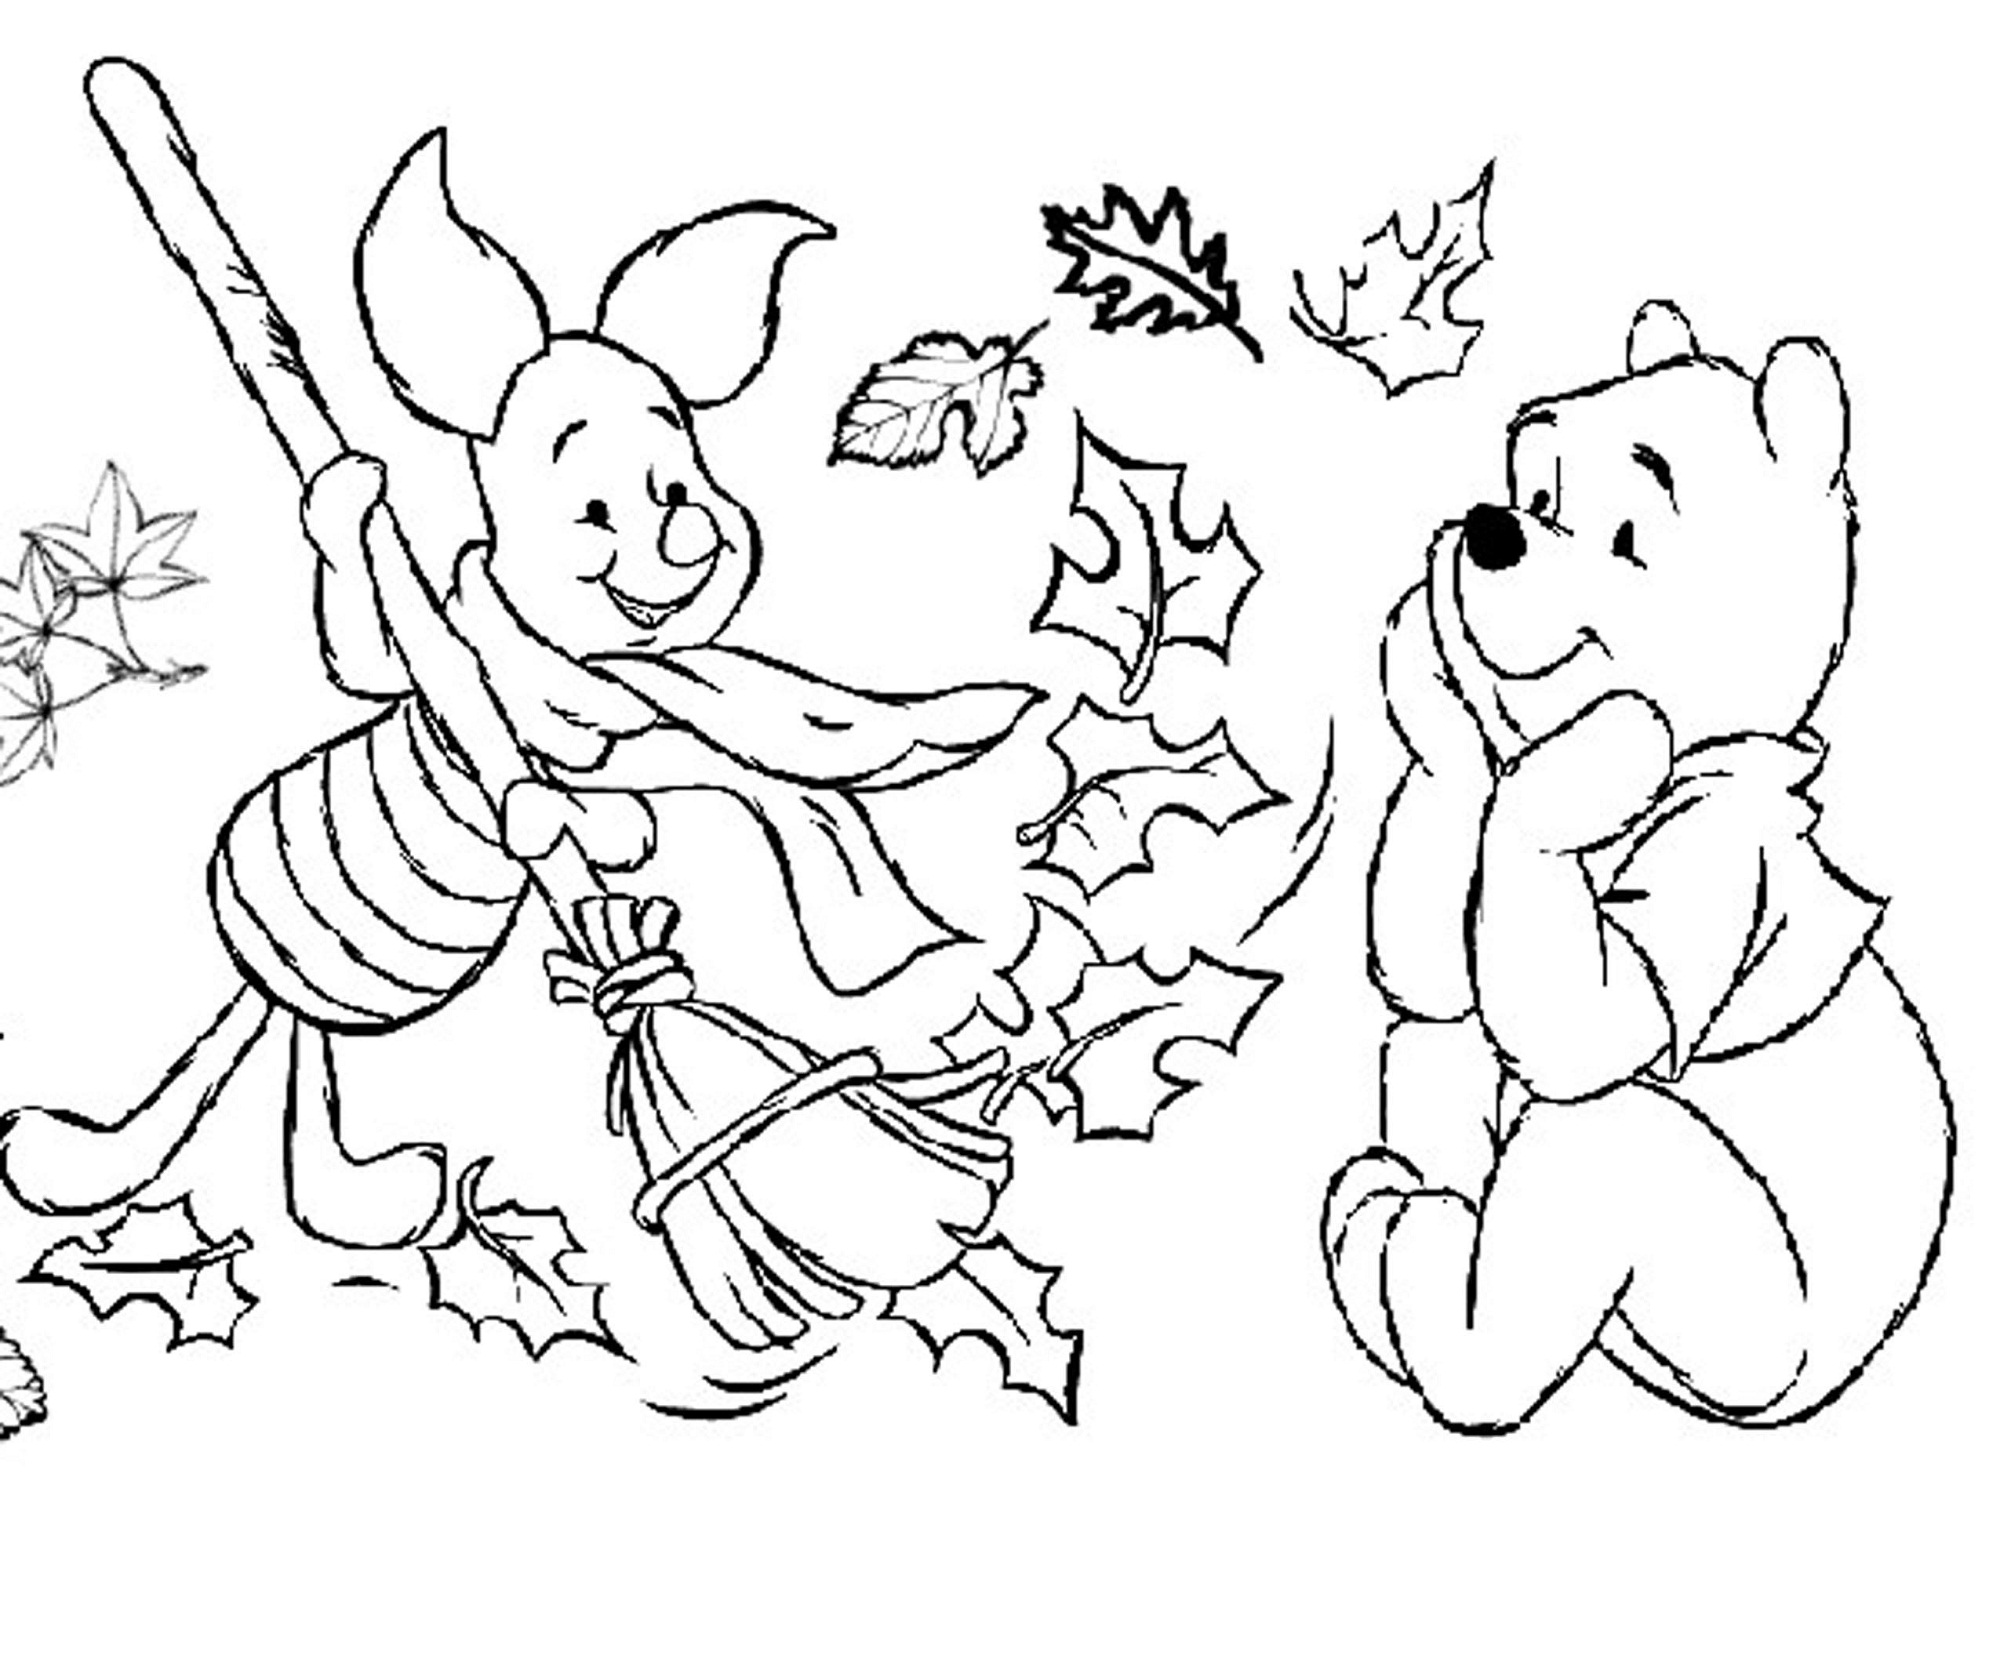 2000x1666 Coloring Pages Coloring Pages Autumn Coloring Pages Autumn